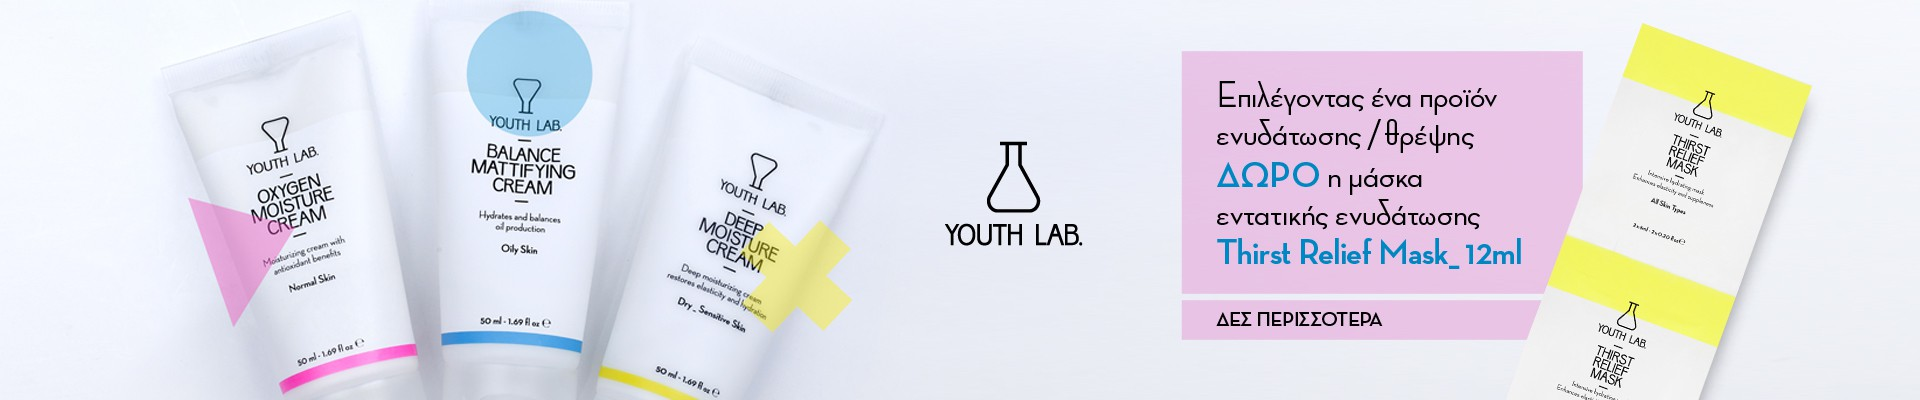 youthlab δωρο μασκα 5/10/18